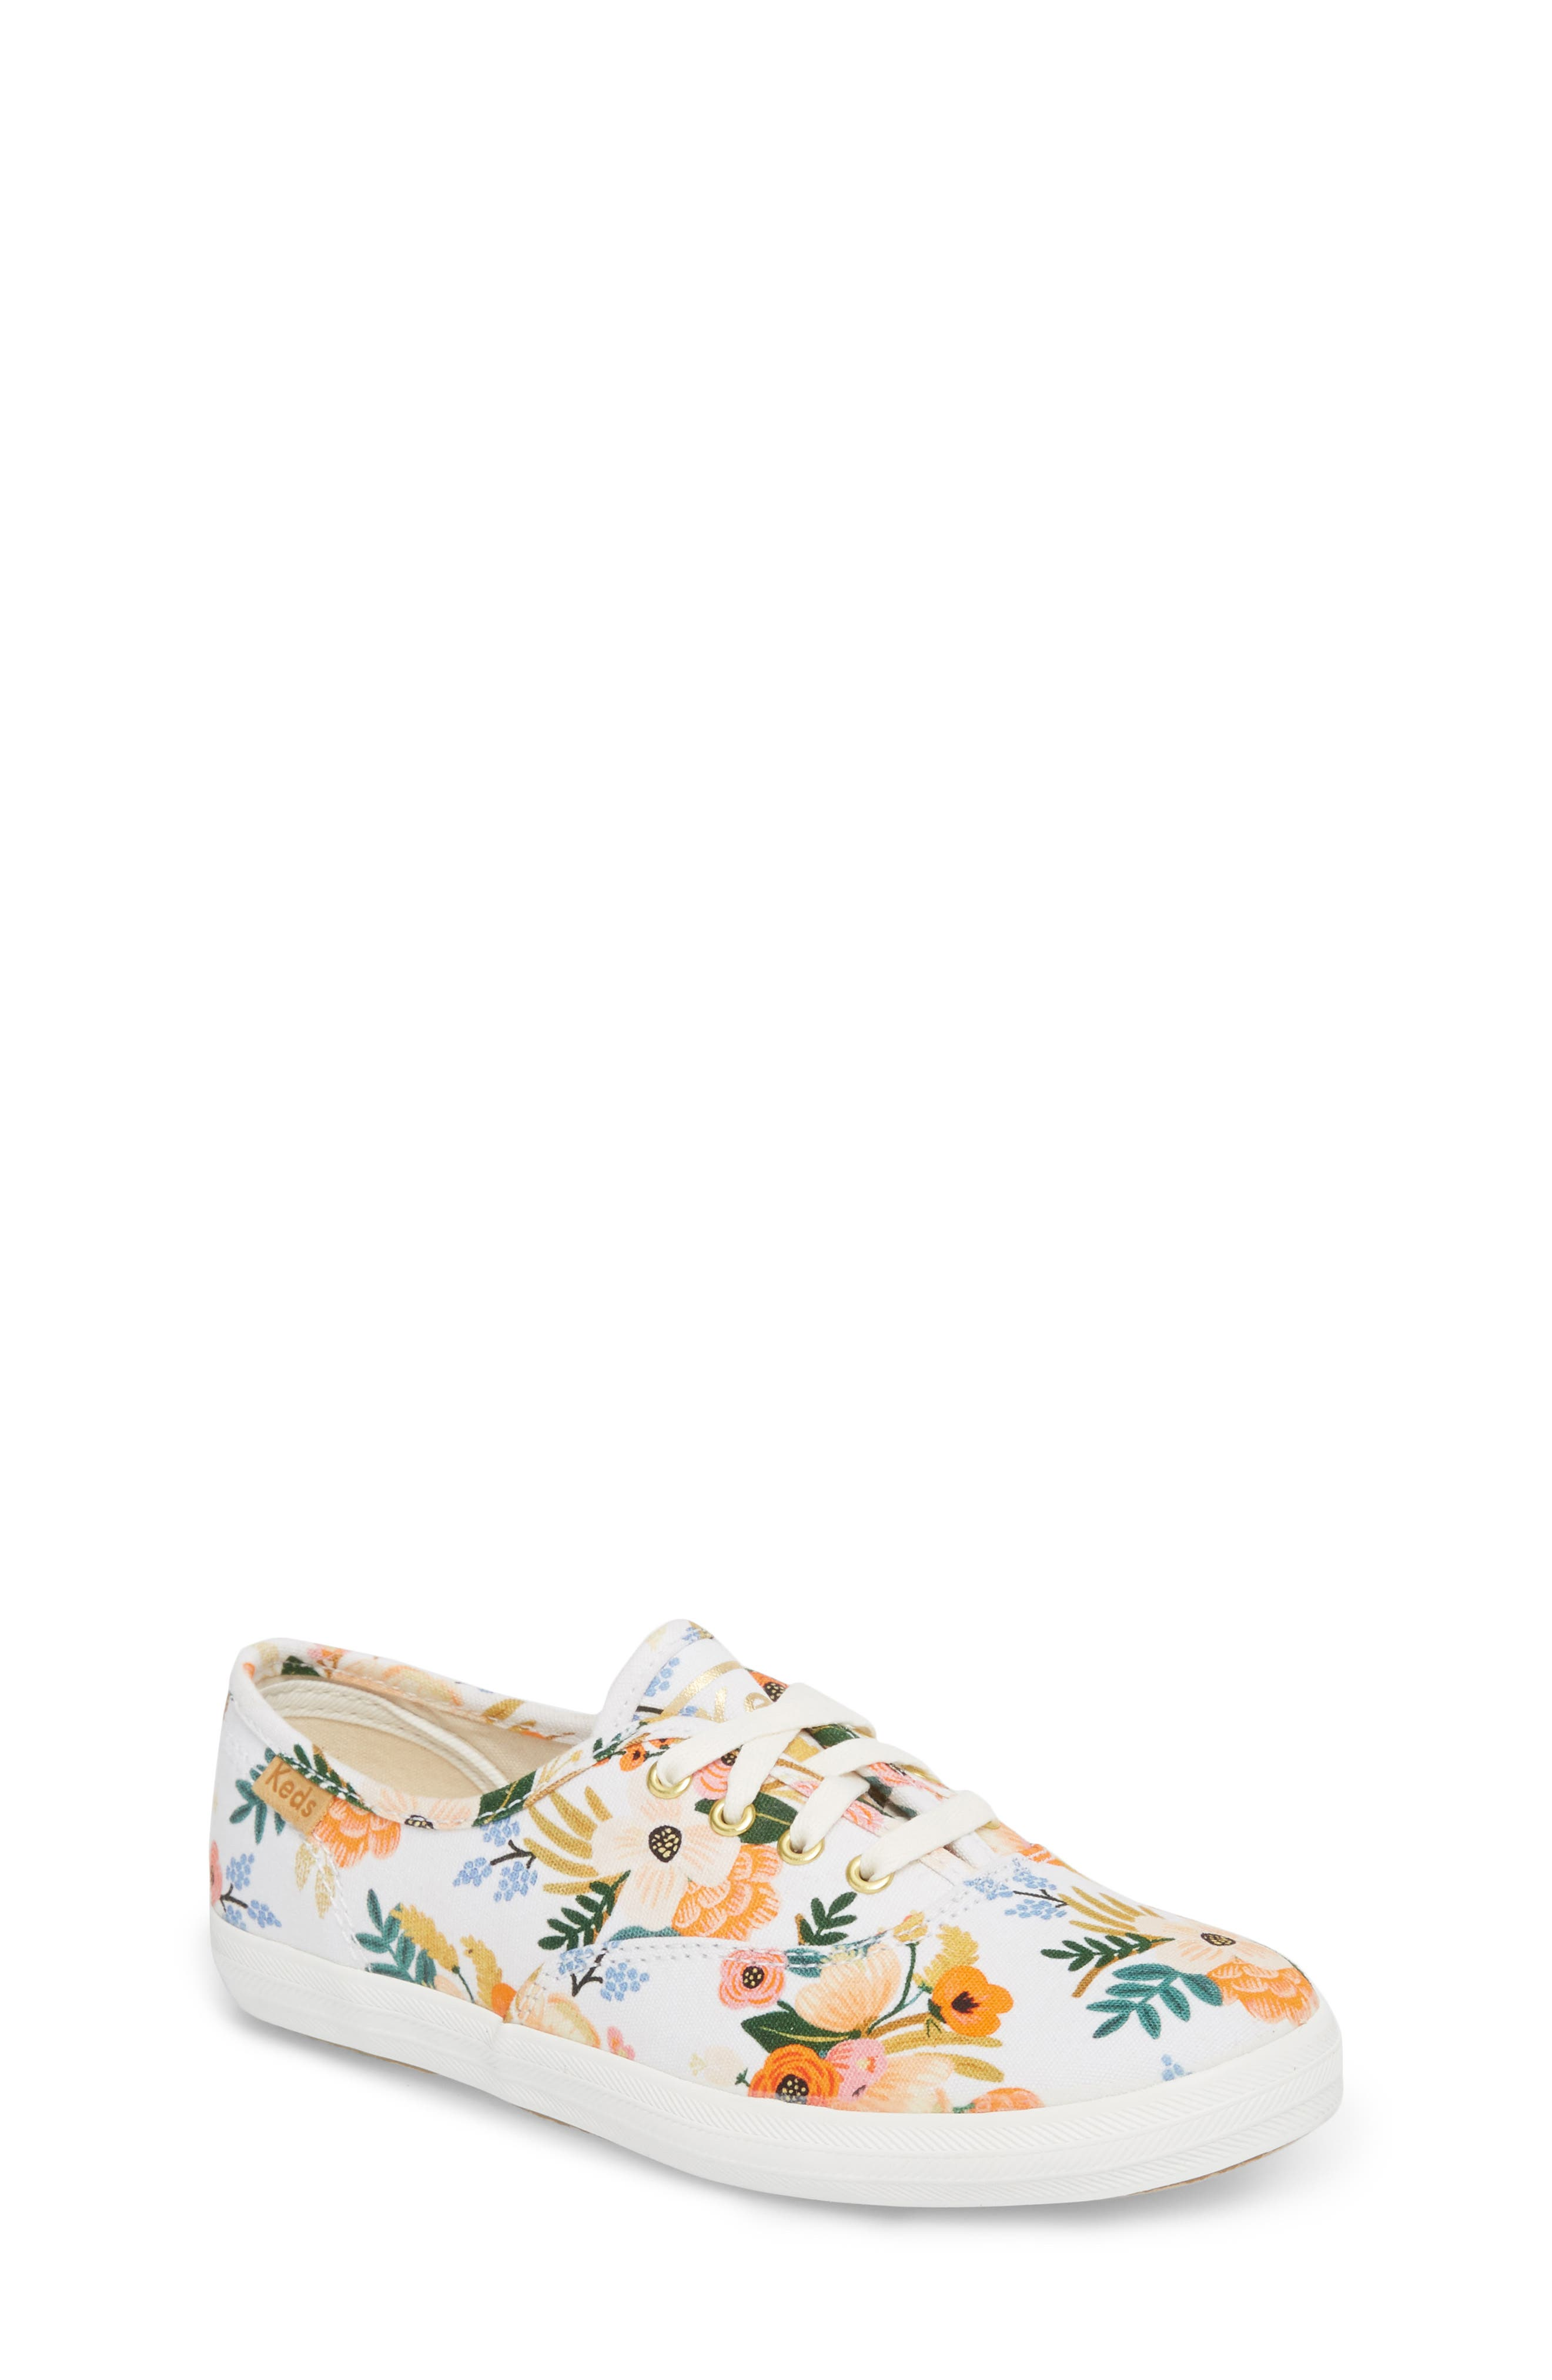 x Rifle Paper Co. Floral Print Champion Sneaker,                         Main,                         color, Lively White